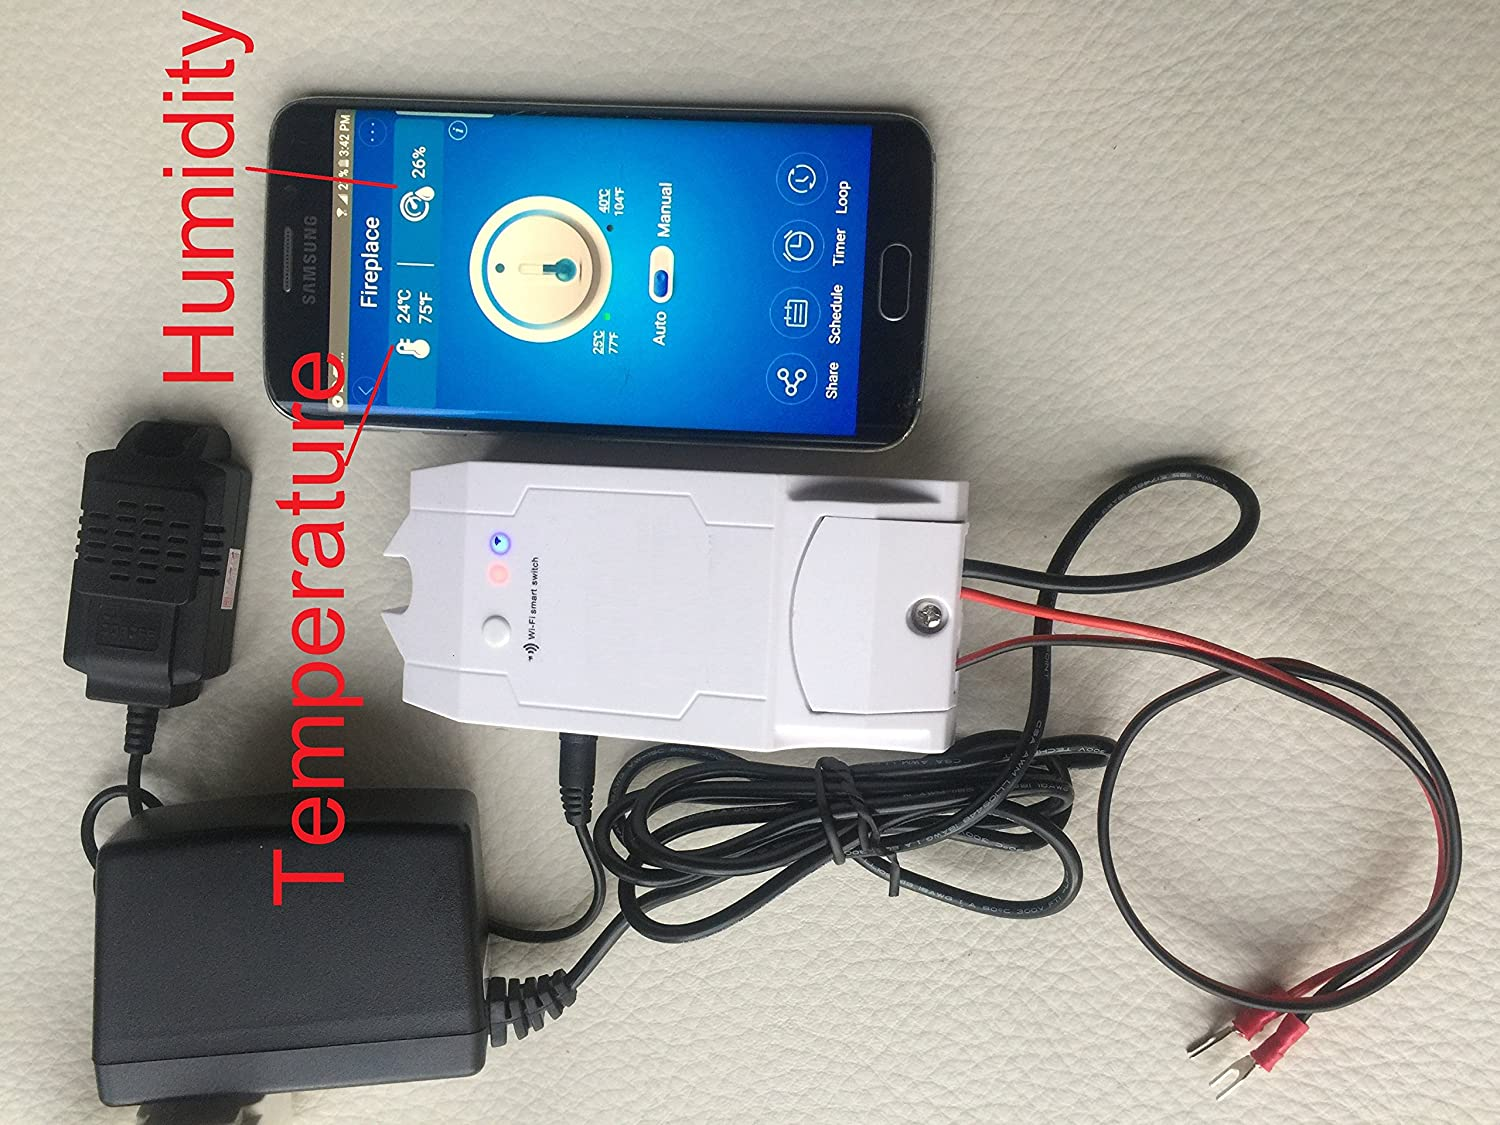 Durablow Fireplace Millivolt Gas Valve Wifi Smart Home Remote Wiring Control Compatible With Alexa Google